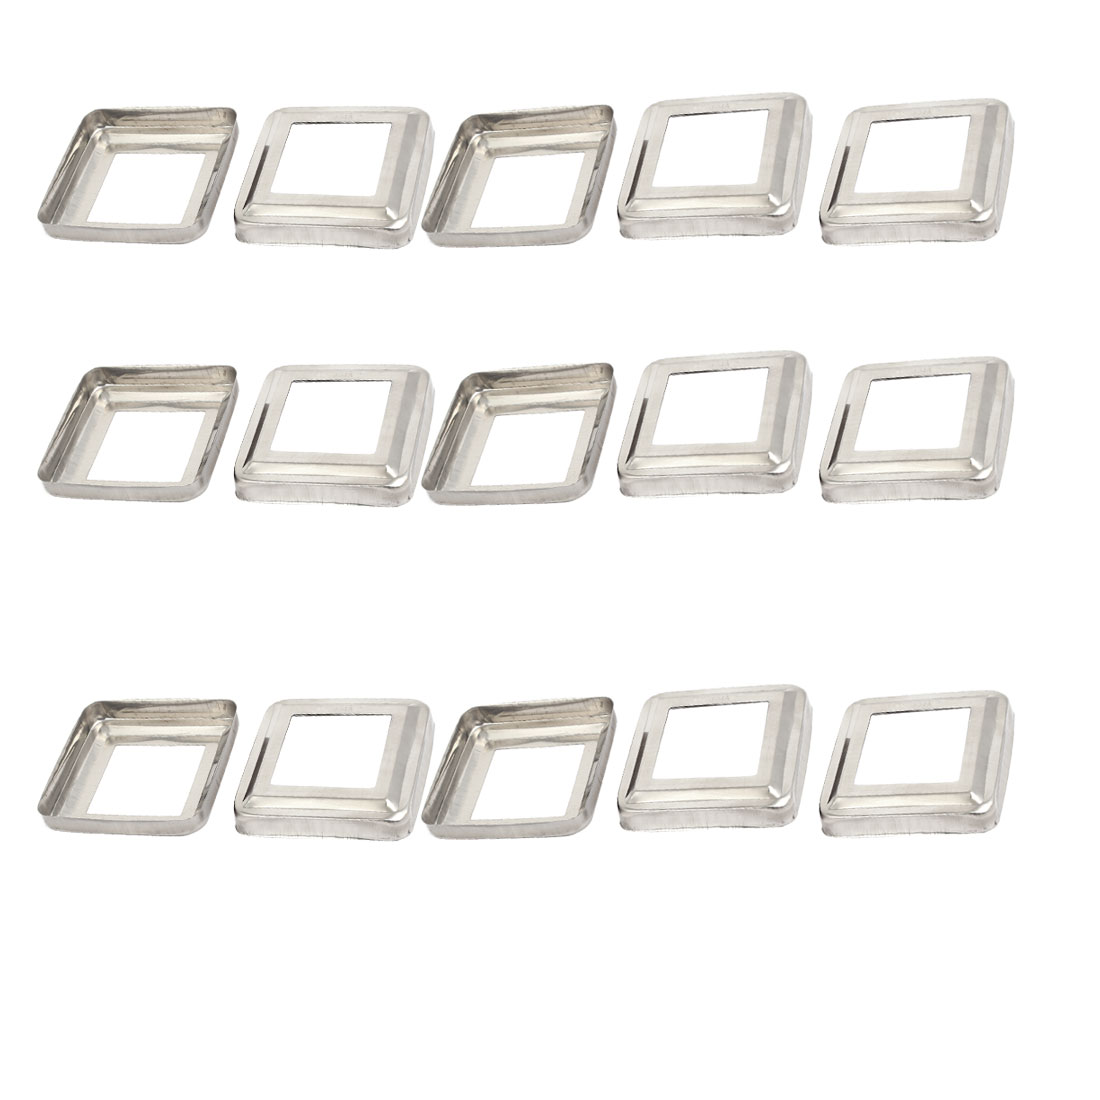 "15pcs Ladder Handrail Hand Rail 2"" x 2"" Post Plate Cover 304 Stainless Steel"